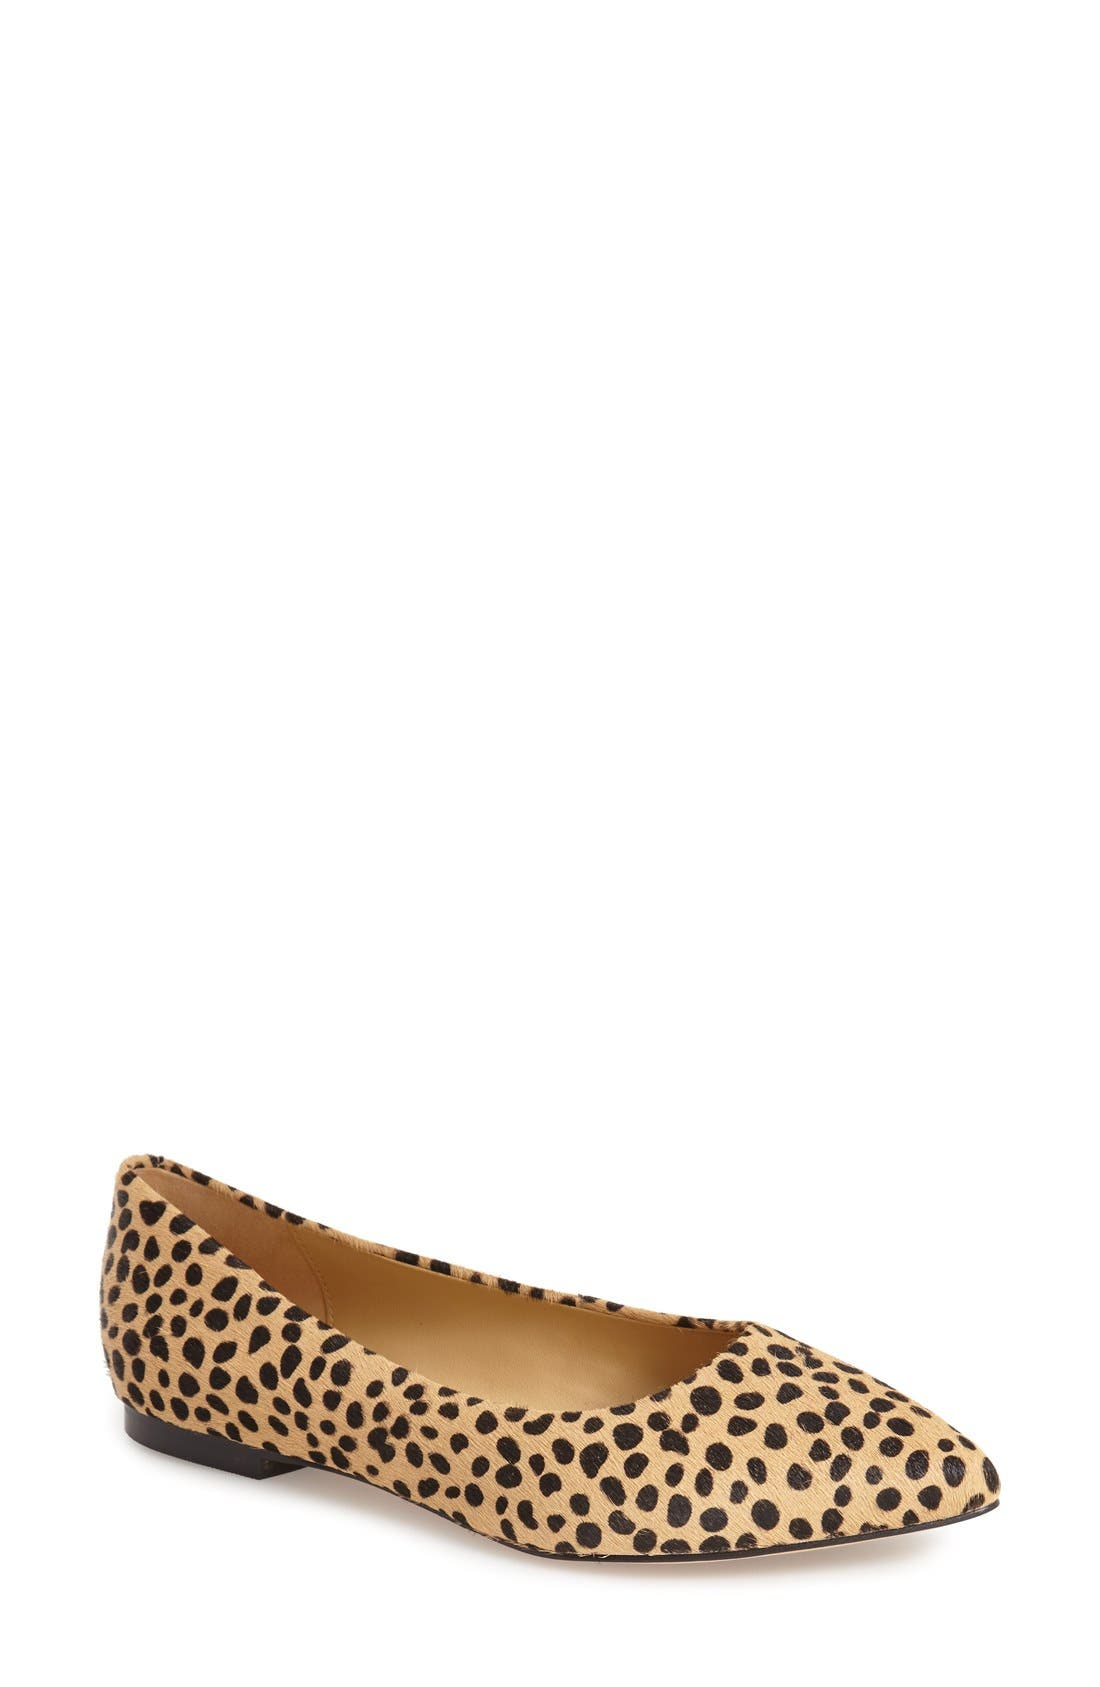 Alternate Image 1 Selected - Trotters Estee Pointed Toe Flat (Women)